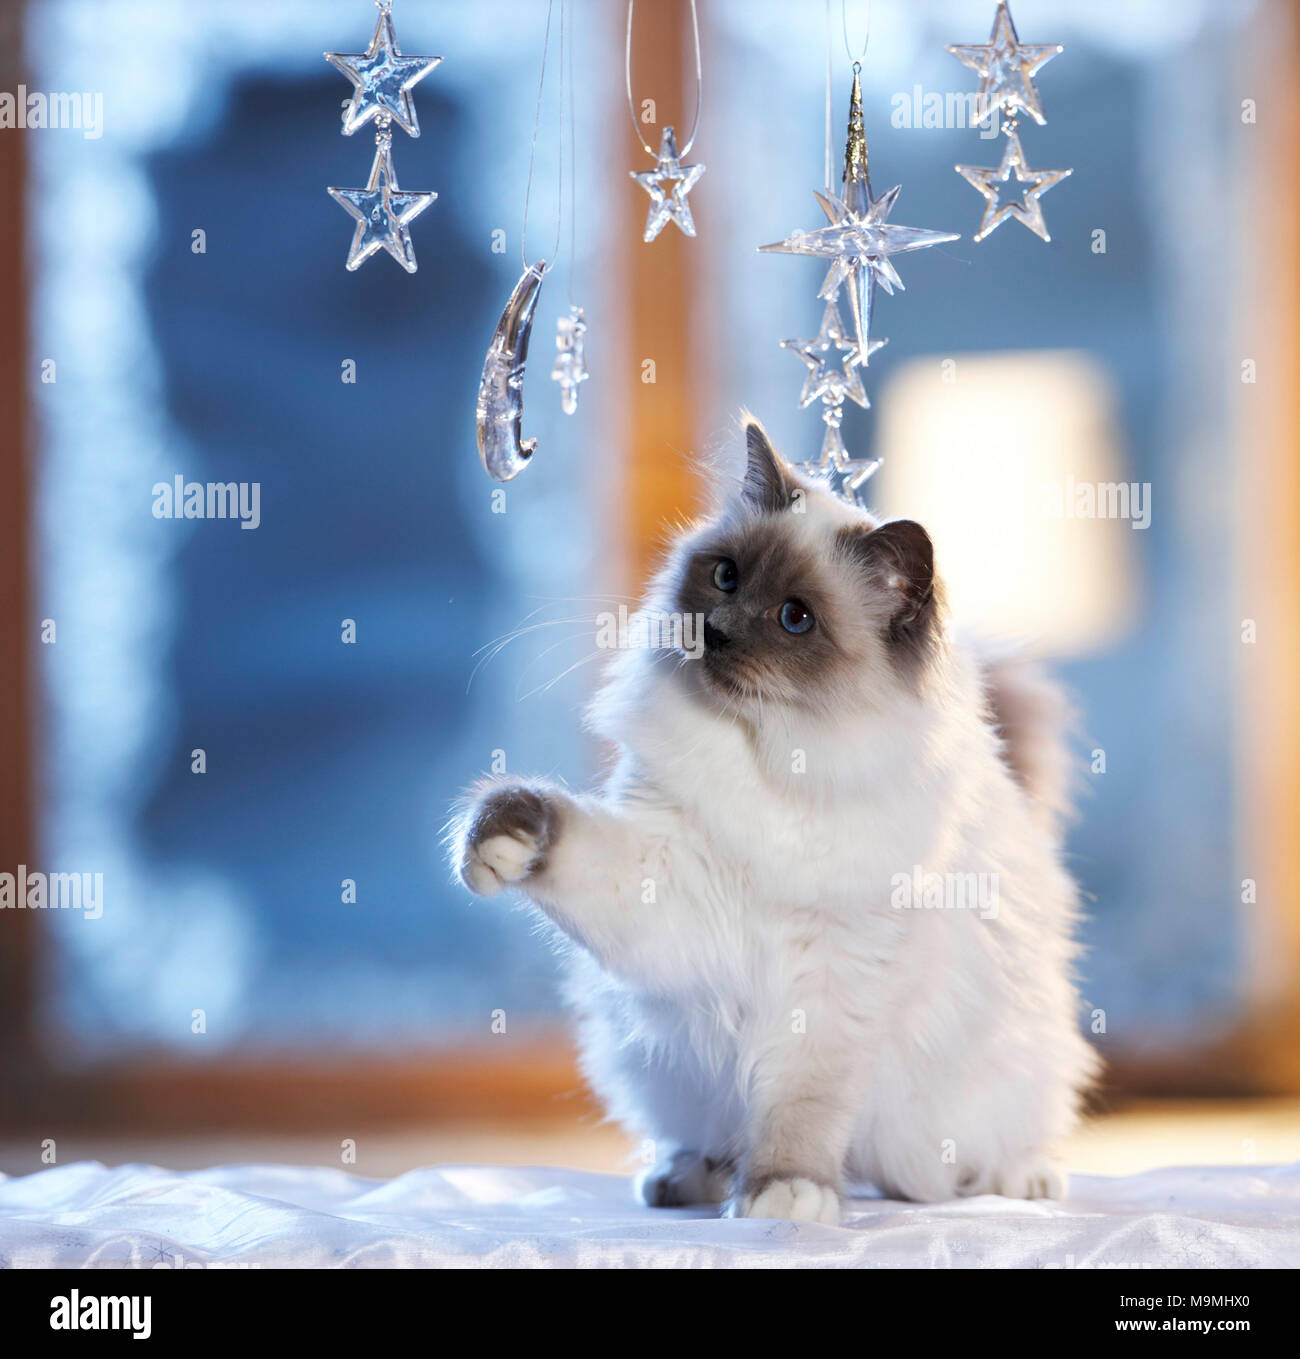 Christmas: Sacred cat of Burma playing with moon and stars made of glass in a festive decorated window. Germany - Stock Image